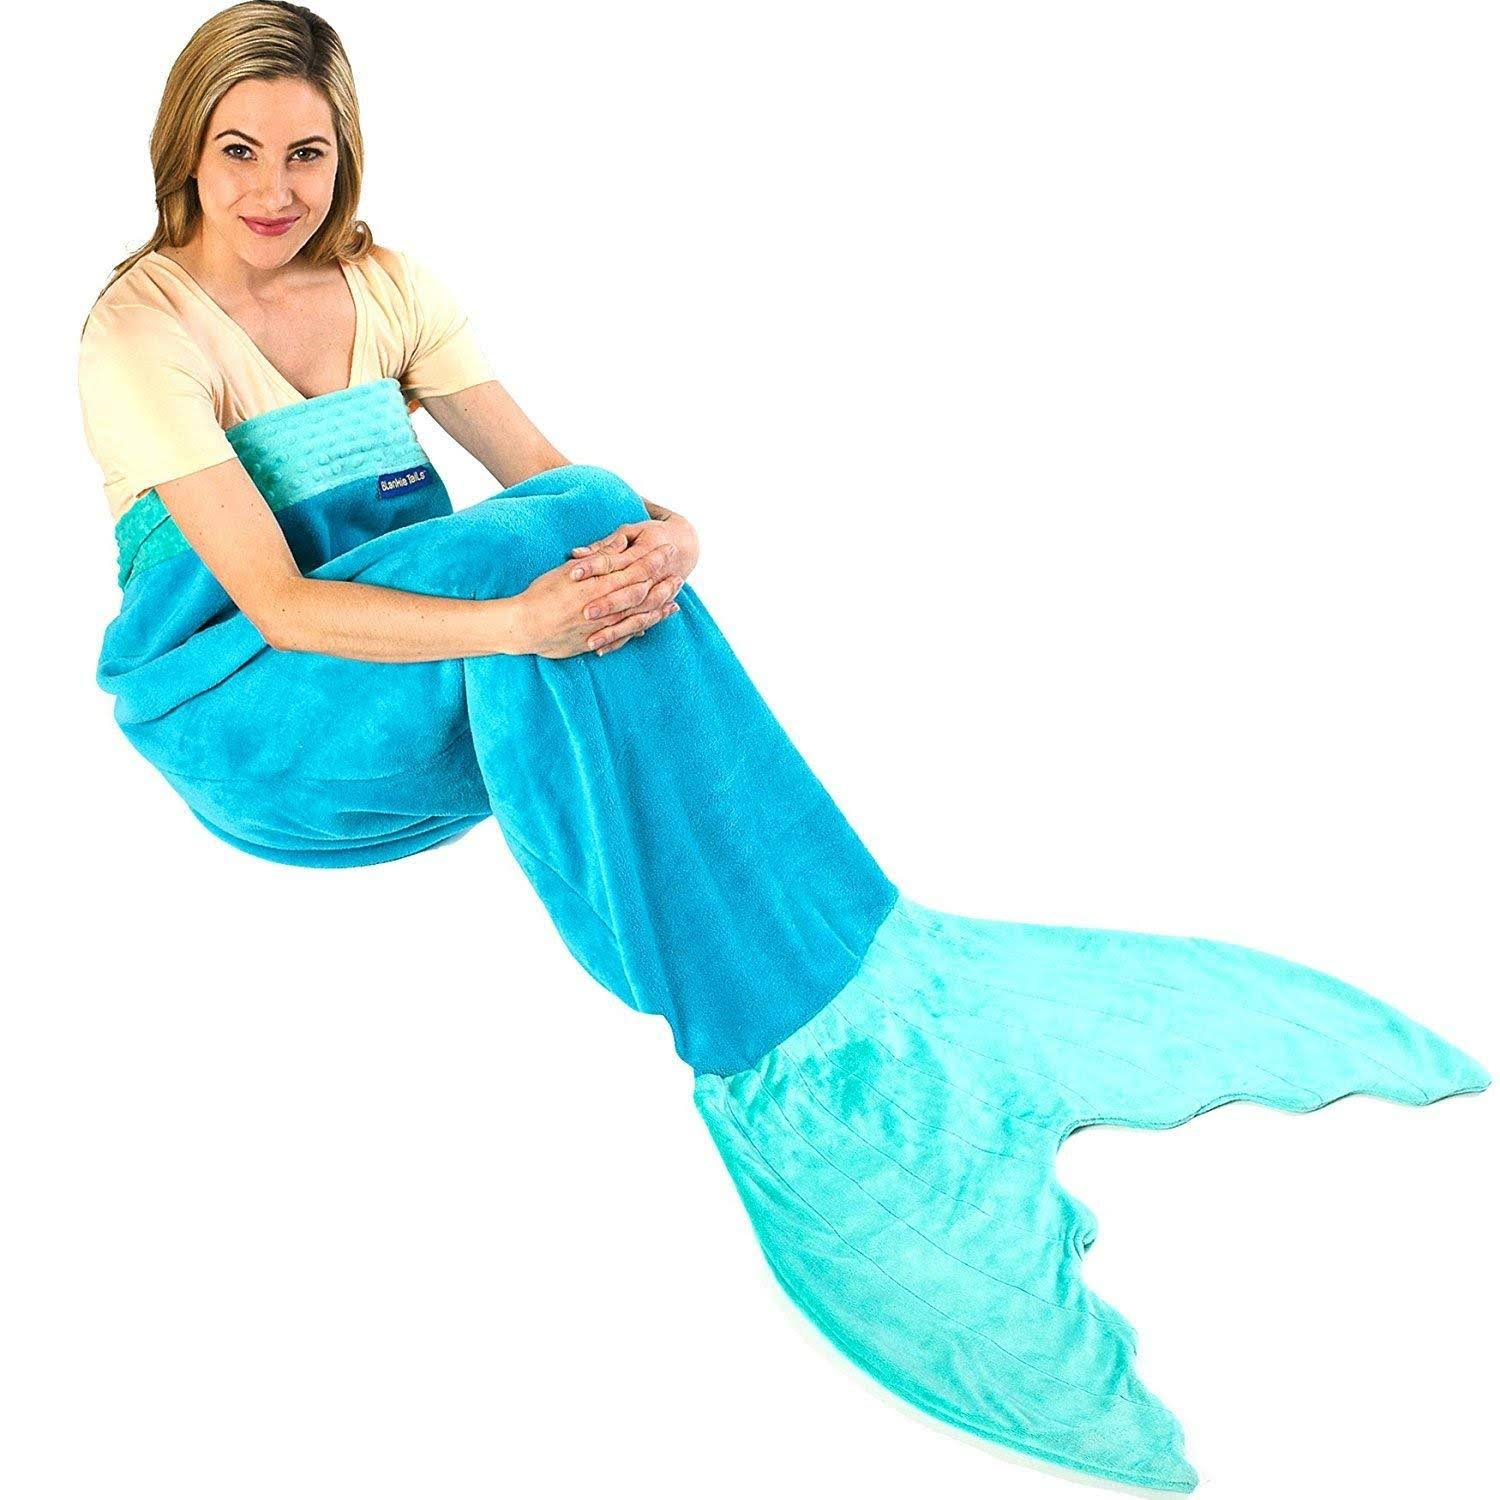 Blankie Tails Mermaid Tail Blanket - Ocean Blue, Youth Size